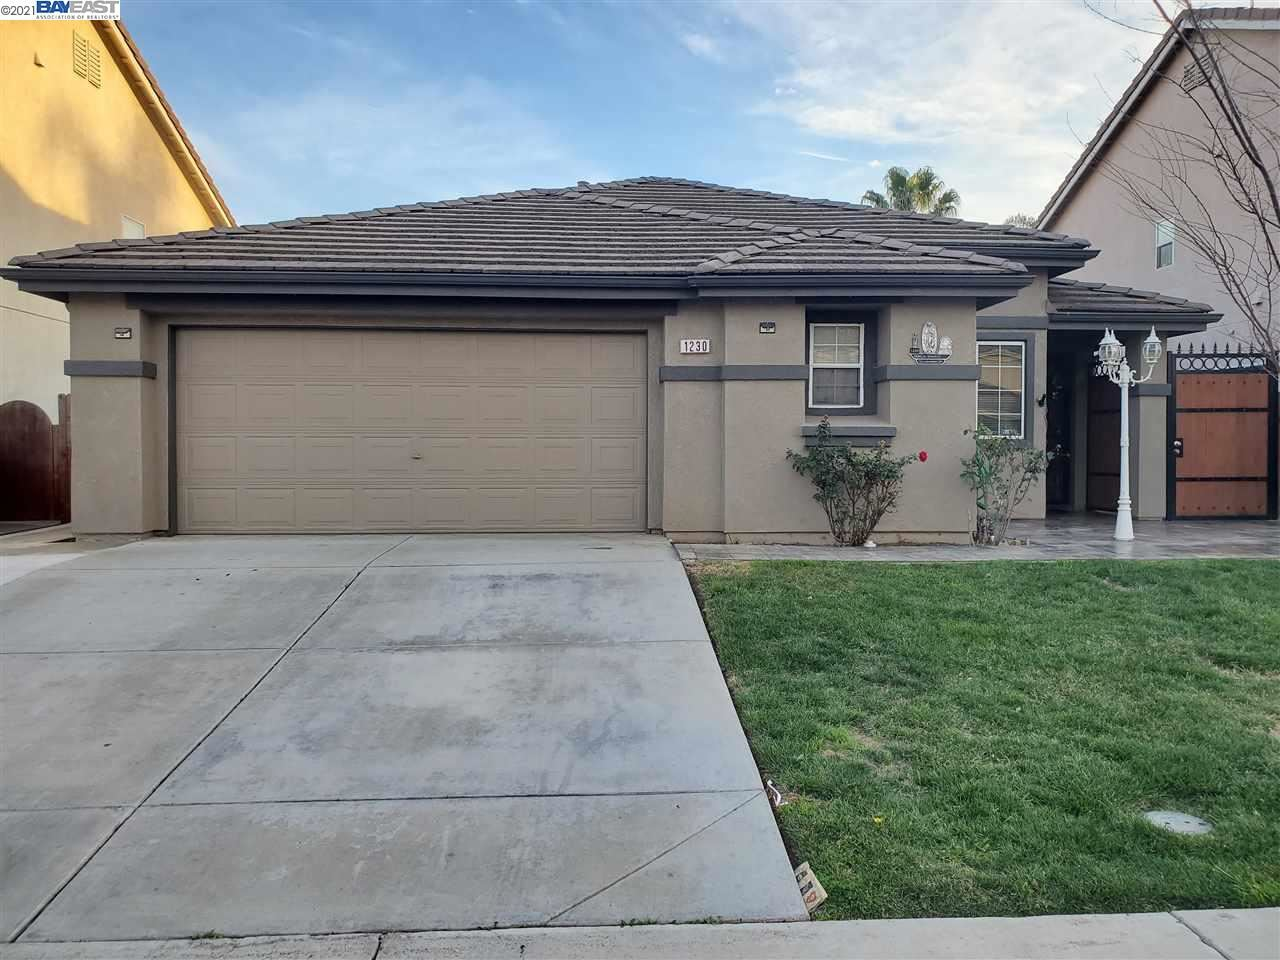 Photo for 1230 Yellowhammer Dr, PATTERSON, CA 95363 (MLS # 40938794)